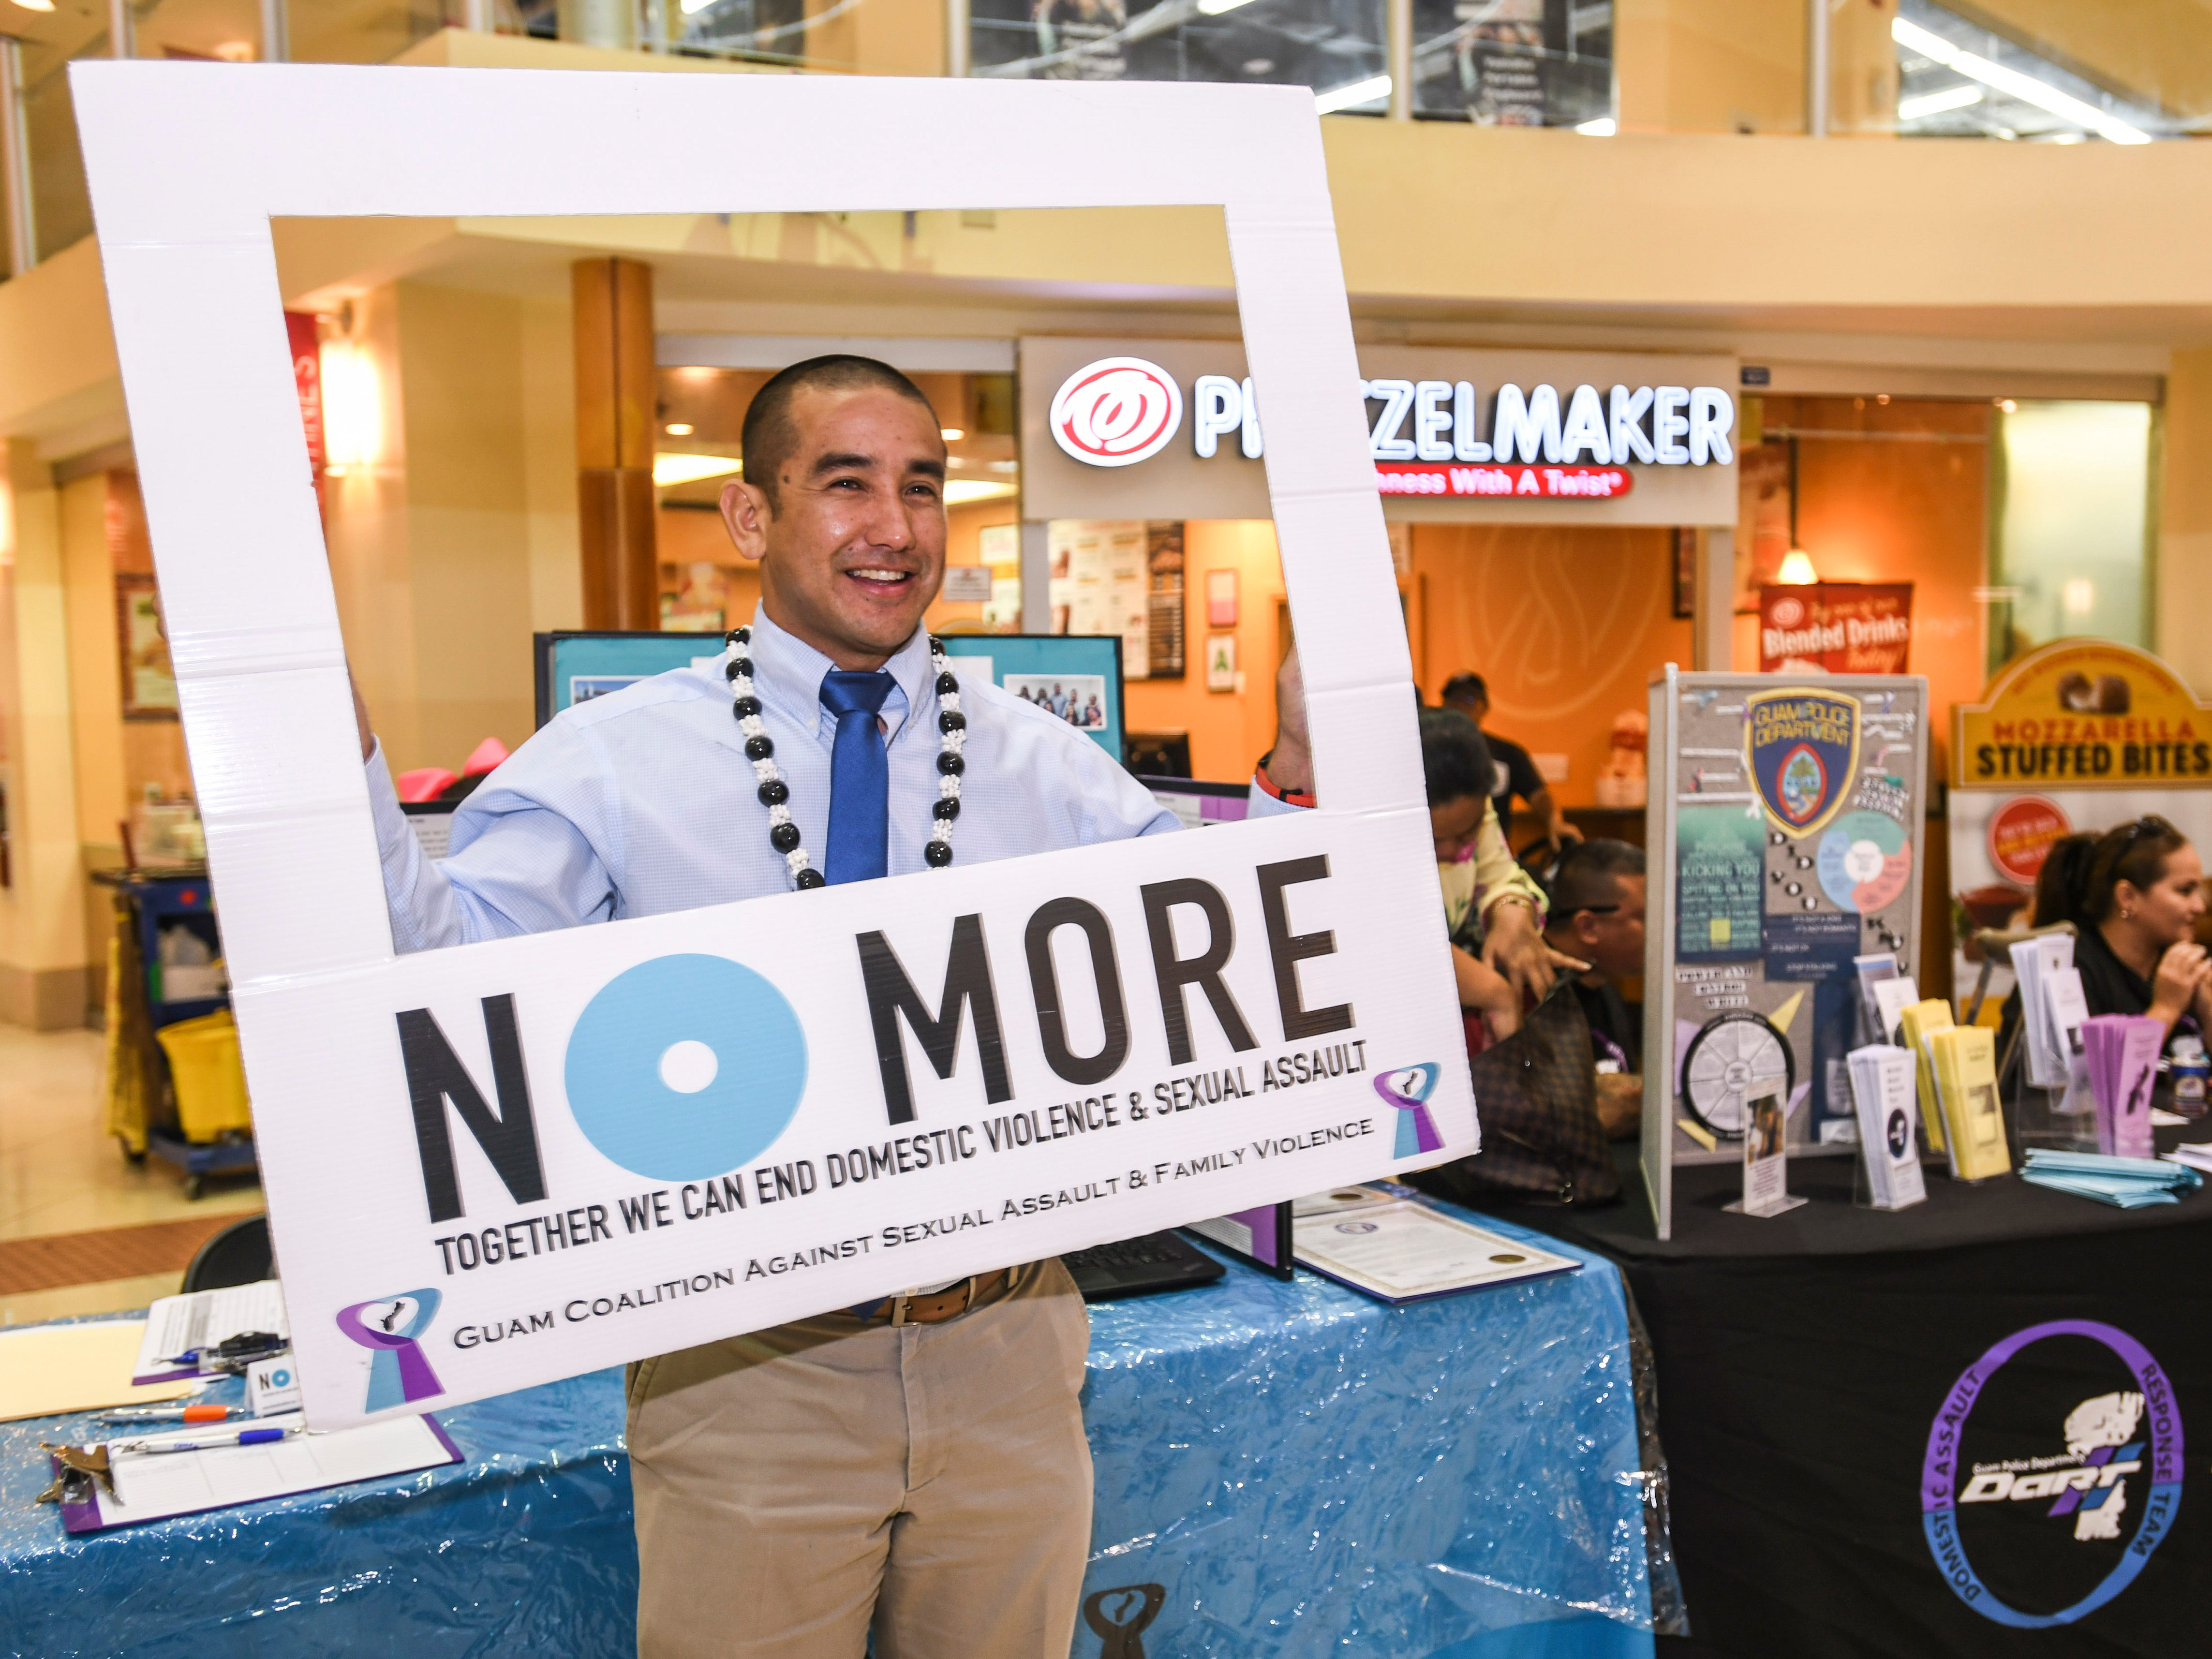 Leevin Camacho, Attorney General of Guam, obliges himself for a photo while visiting the Guam Coalition Against Sexual Assault and Family Violence table during the National Slavery and Human Trafficking Prevention Month and National Stalking Awareness Month Outreach Fair at the Agana Shopping Center on Saturday, Jan. 19, 2019.